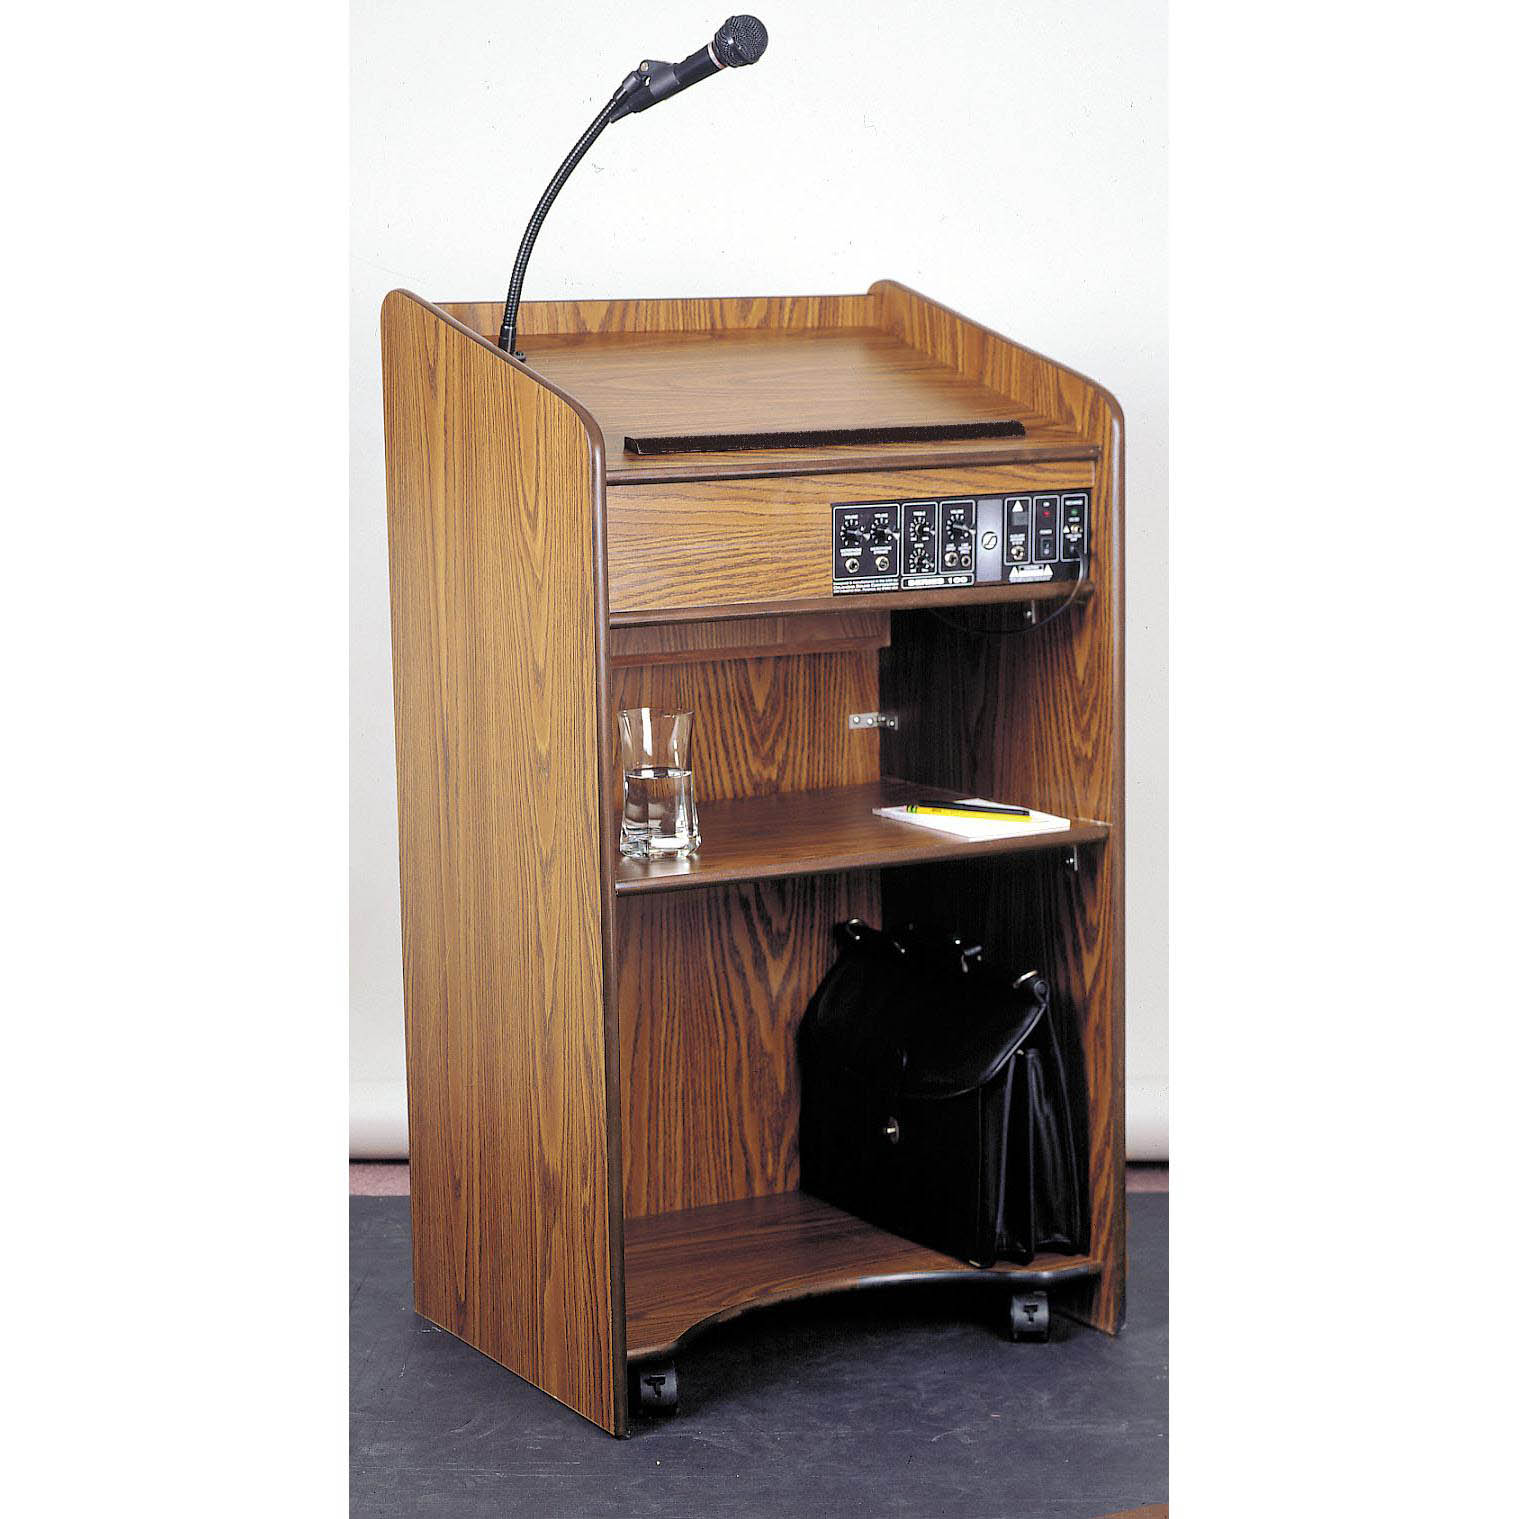 6010 - The Aristocrat Full Floor Lectern with Sound and 2 Shelves in Mahogany Finish - 6010-Mahogany